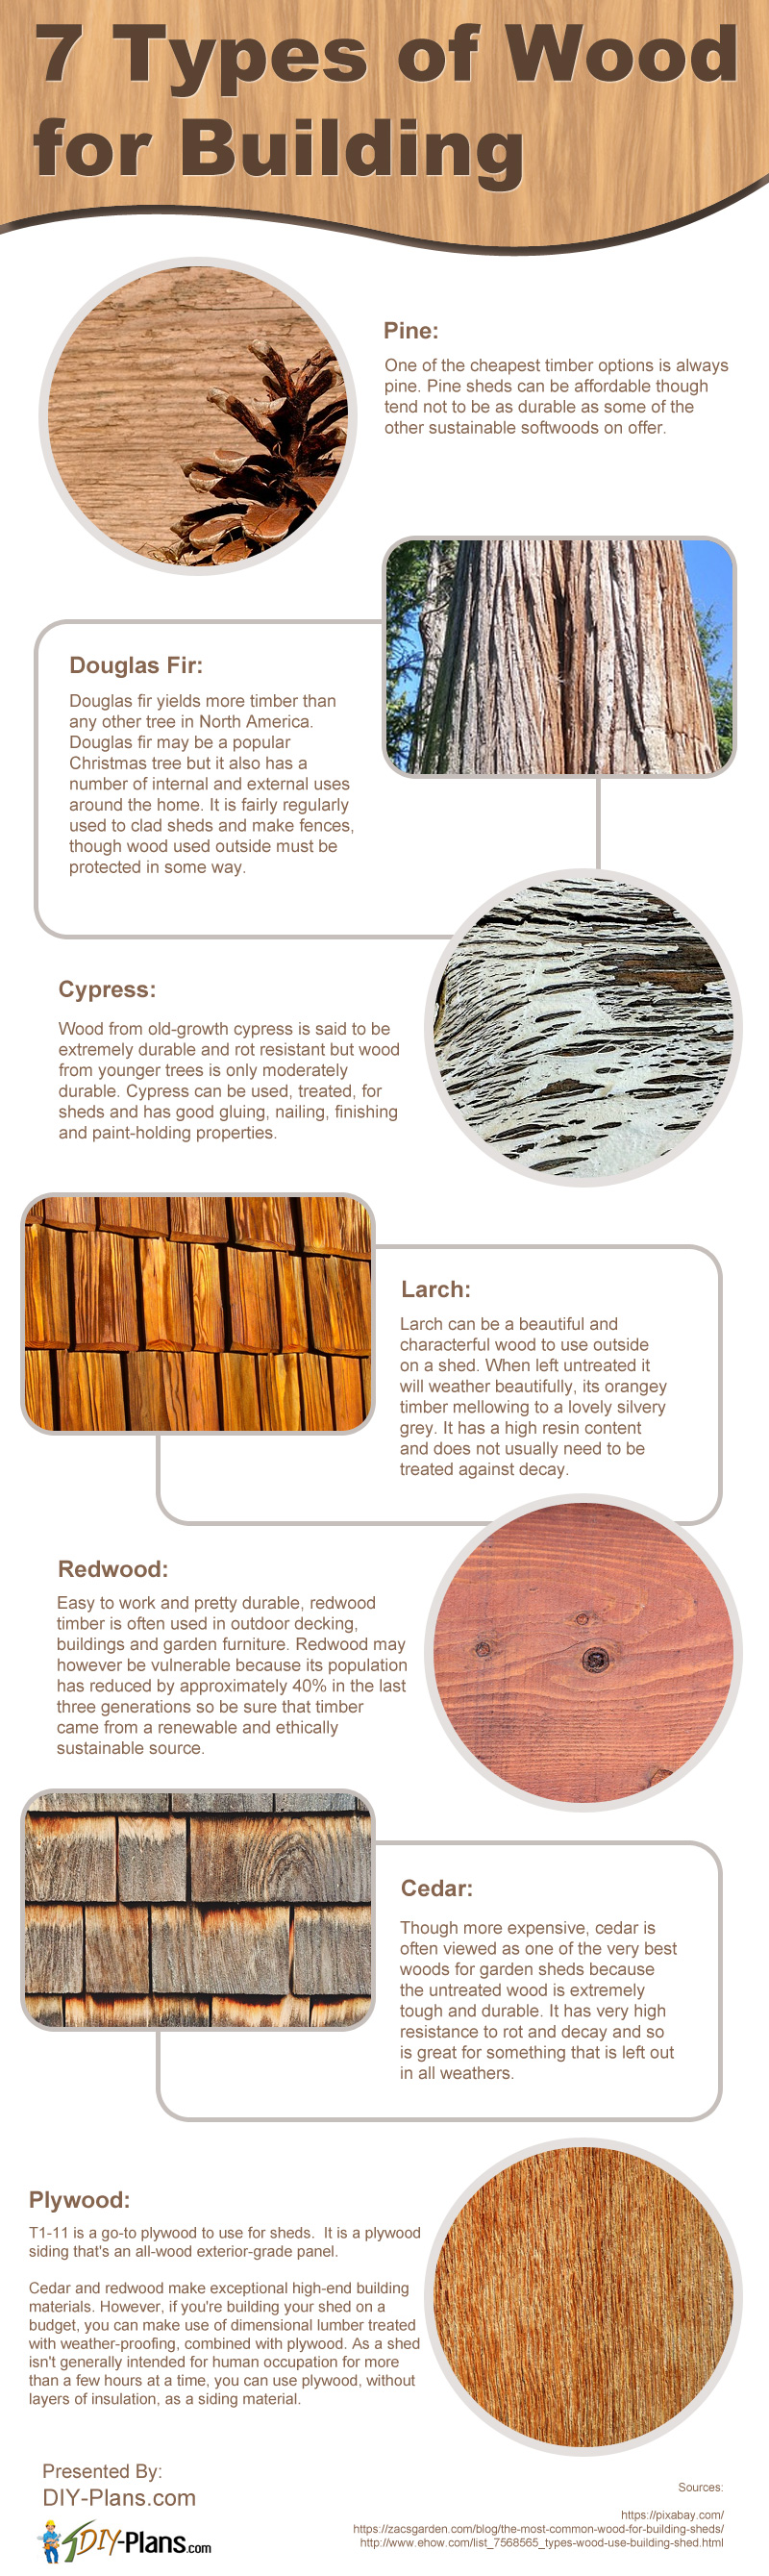 types of wood for bulding sheds